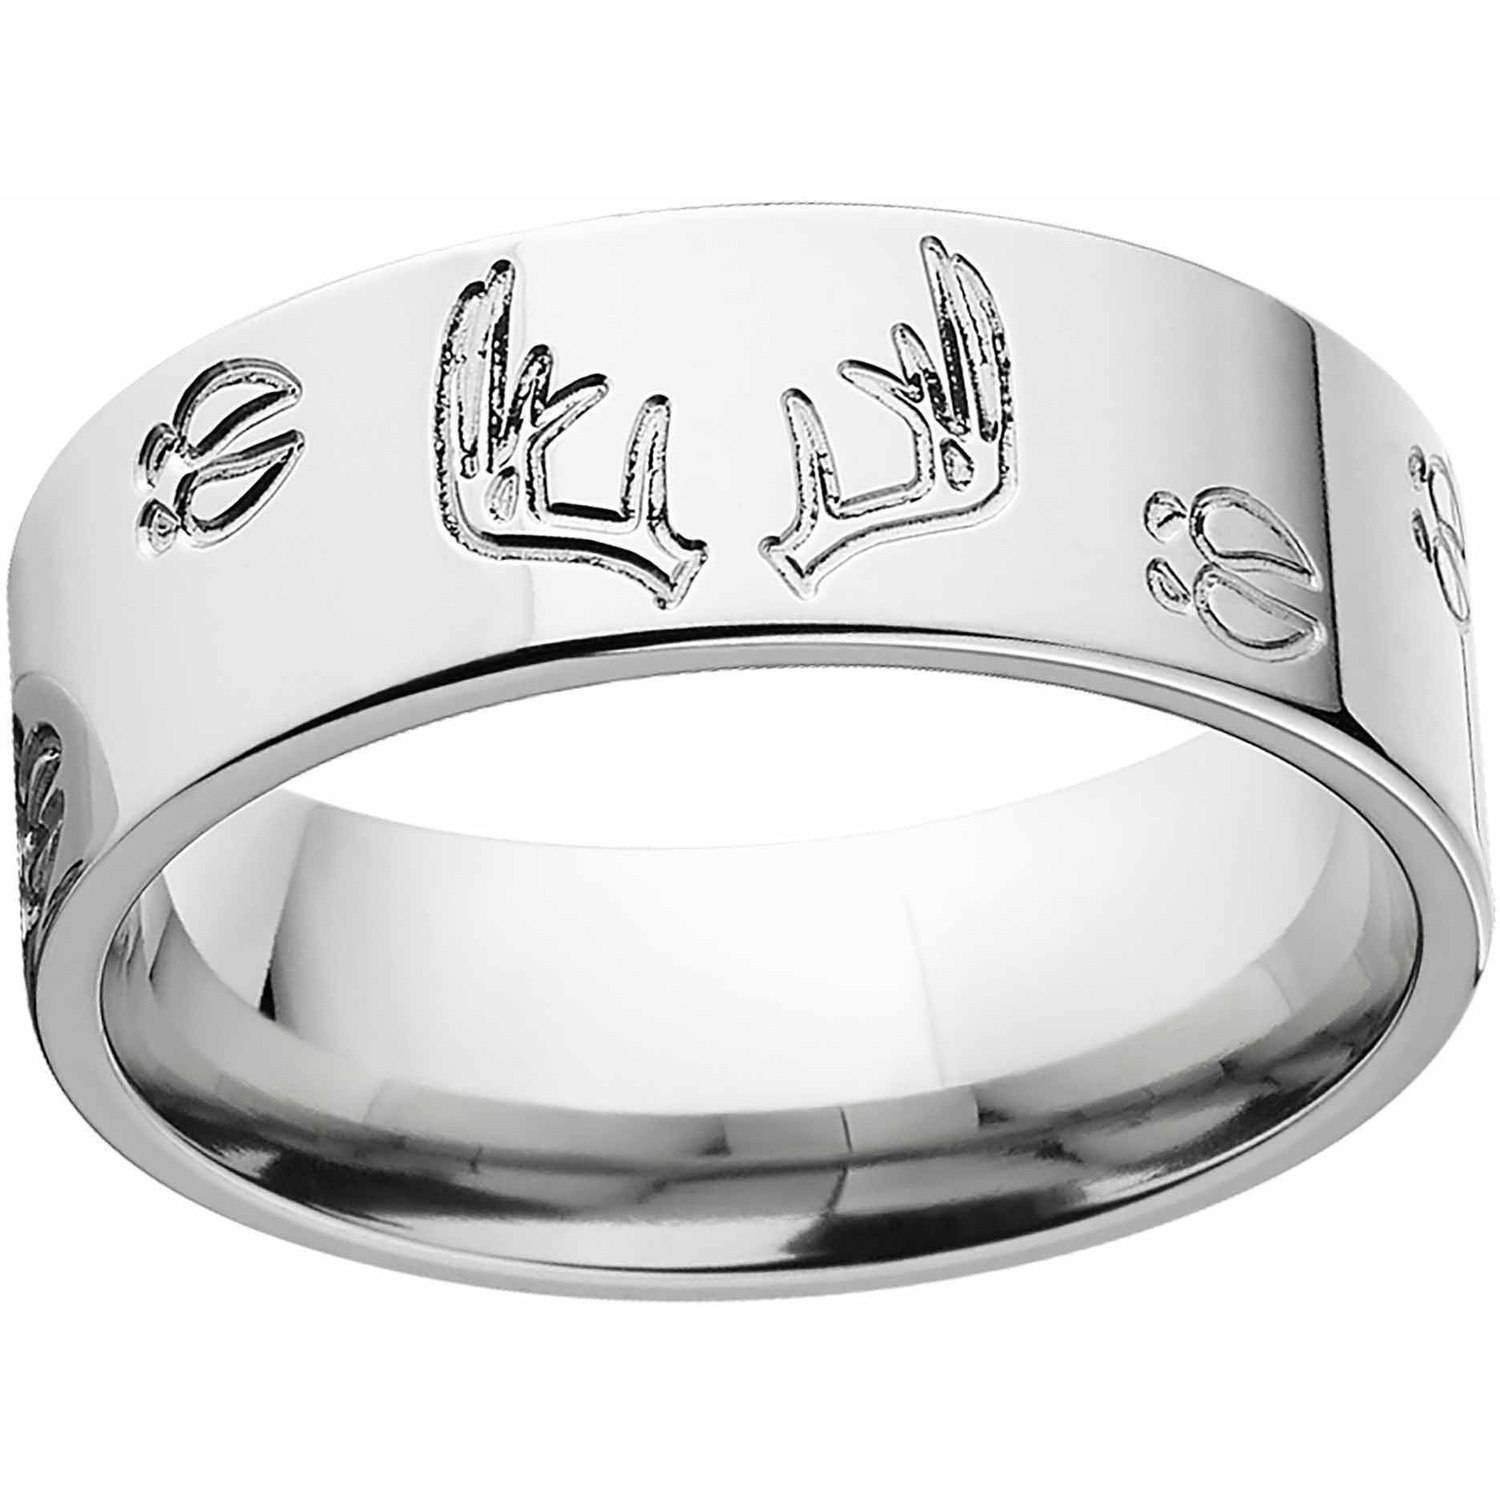 Men's Deer Track And Rack Durable 8mm Stainless Steel Wedding Band Pertaining To Men's Hunting Wedding Bands (View 3 of 15)